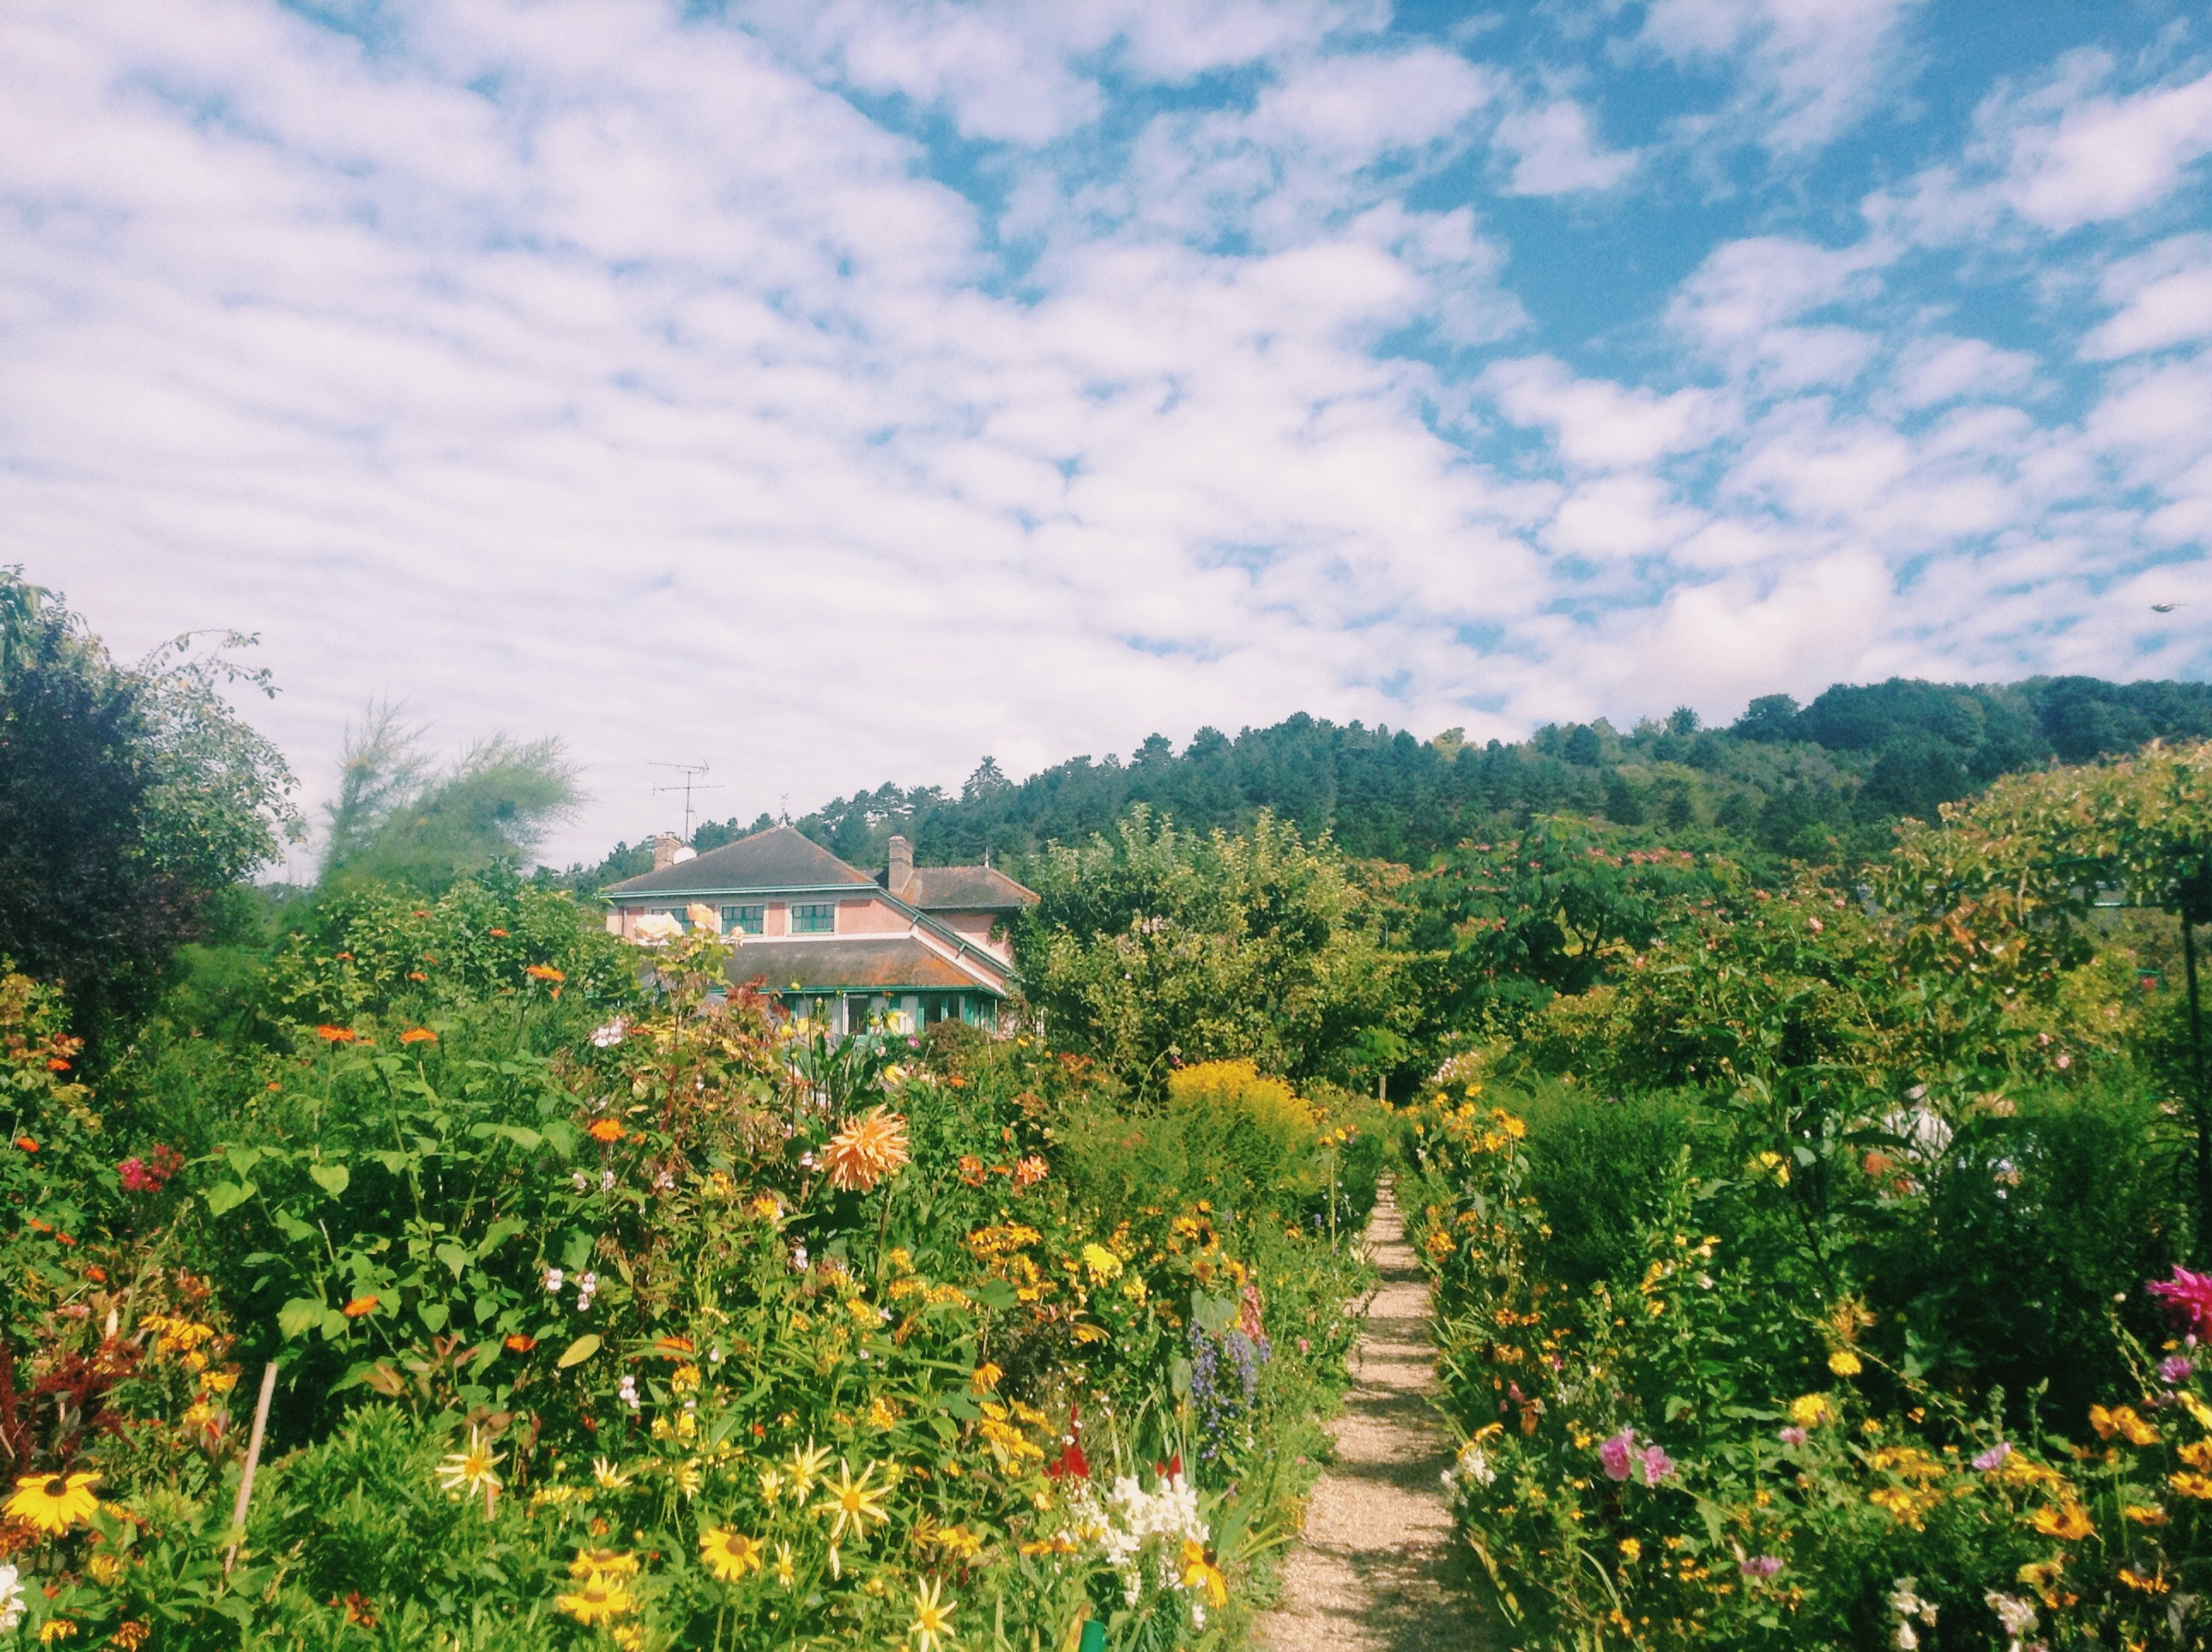 Late Summer at Giverny